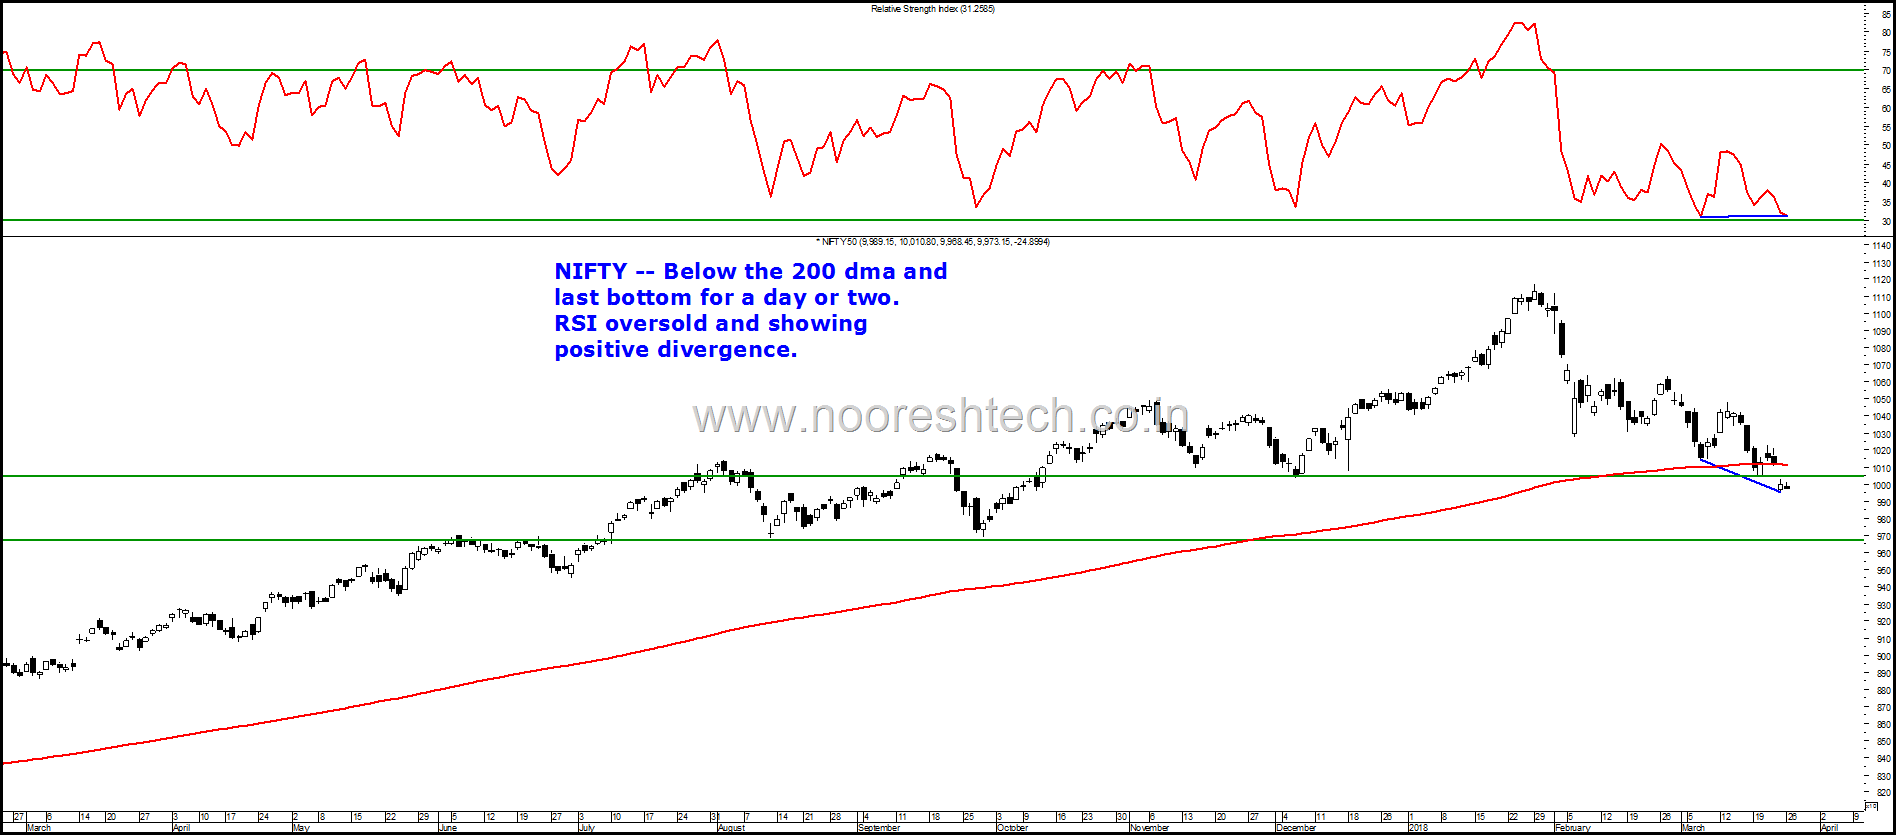 Nifty Divergence